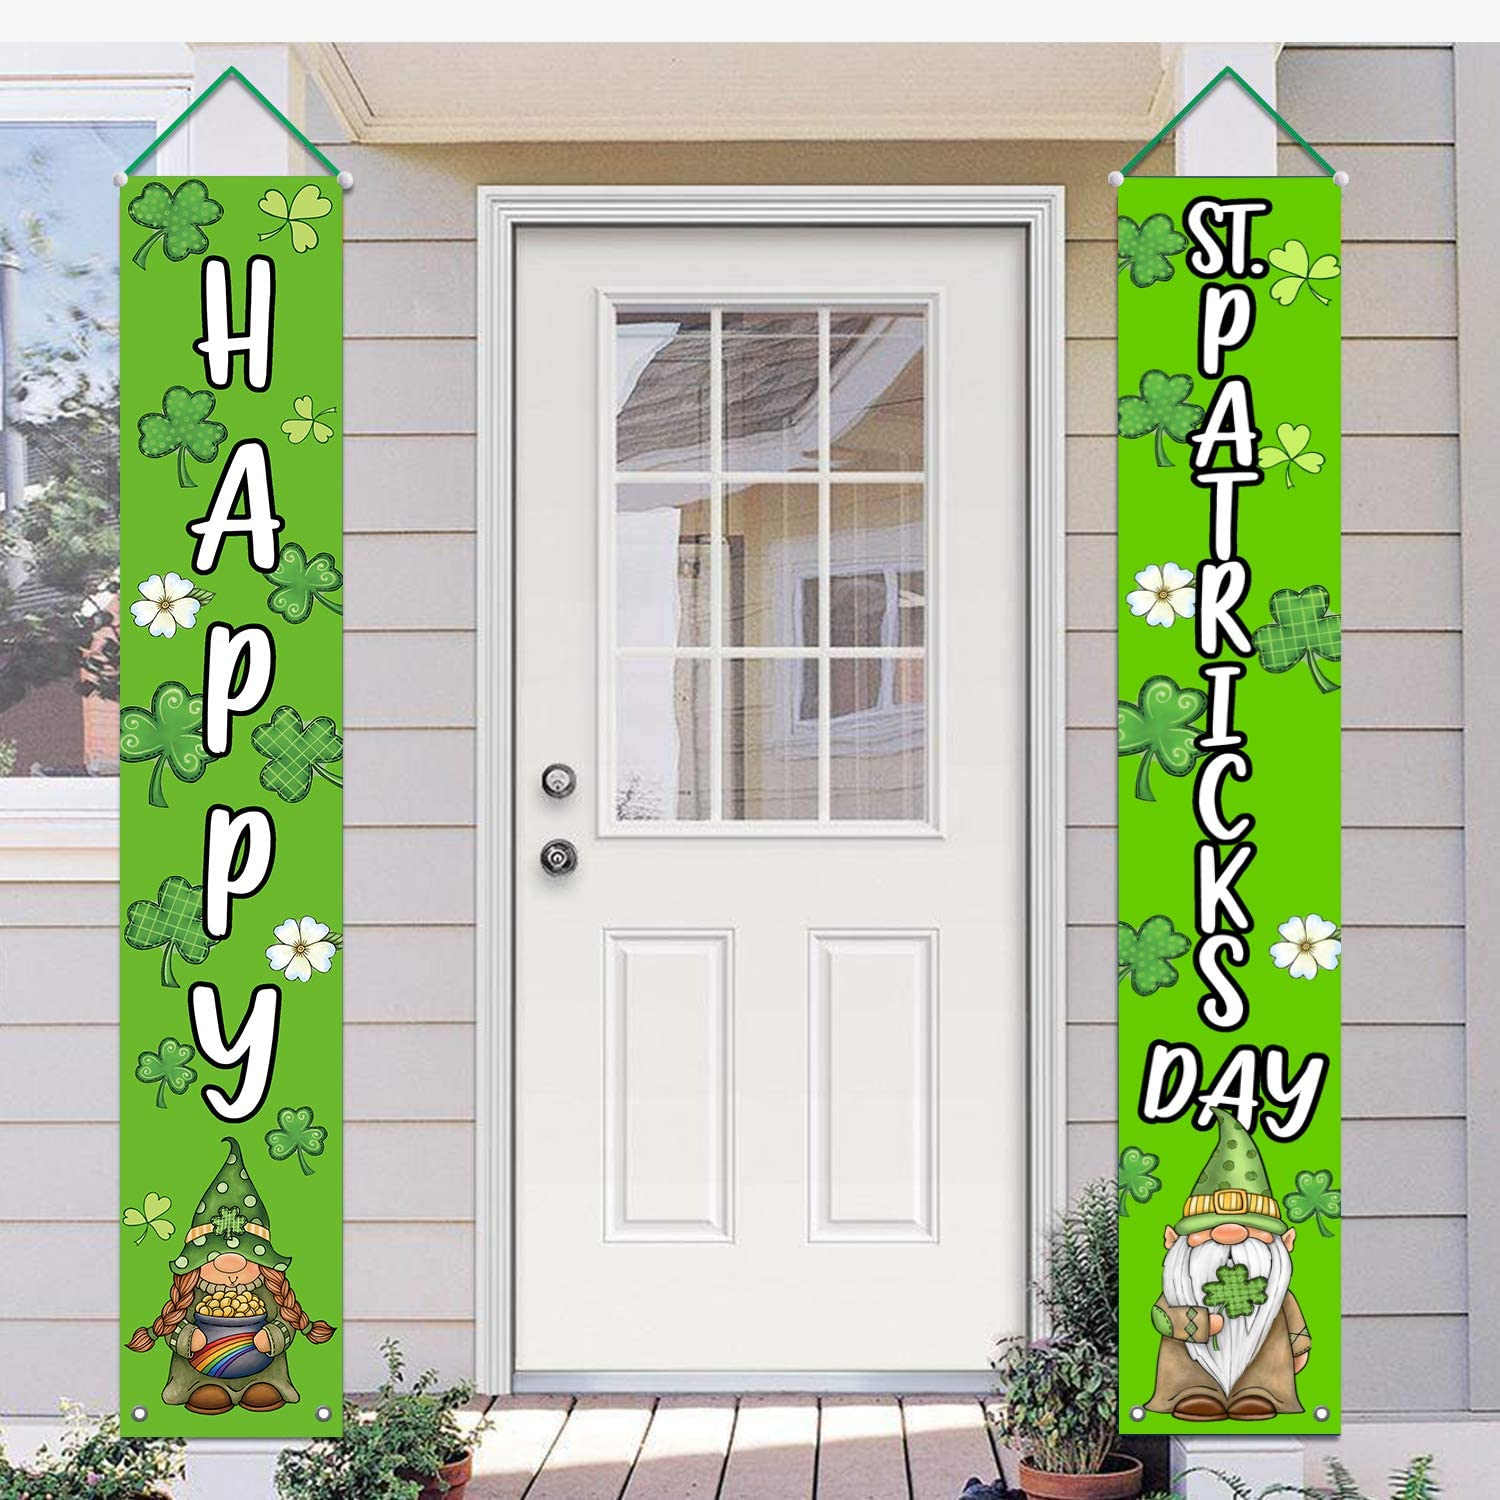 Lucky and I Gnome It Banner Irish Party Decor Funny Happy St Patty/'s Day Party Decorations Supplies St Patricks Day Gnome Banner Patrick/'s Day Decorations Glittery St